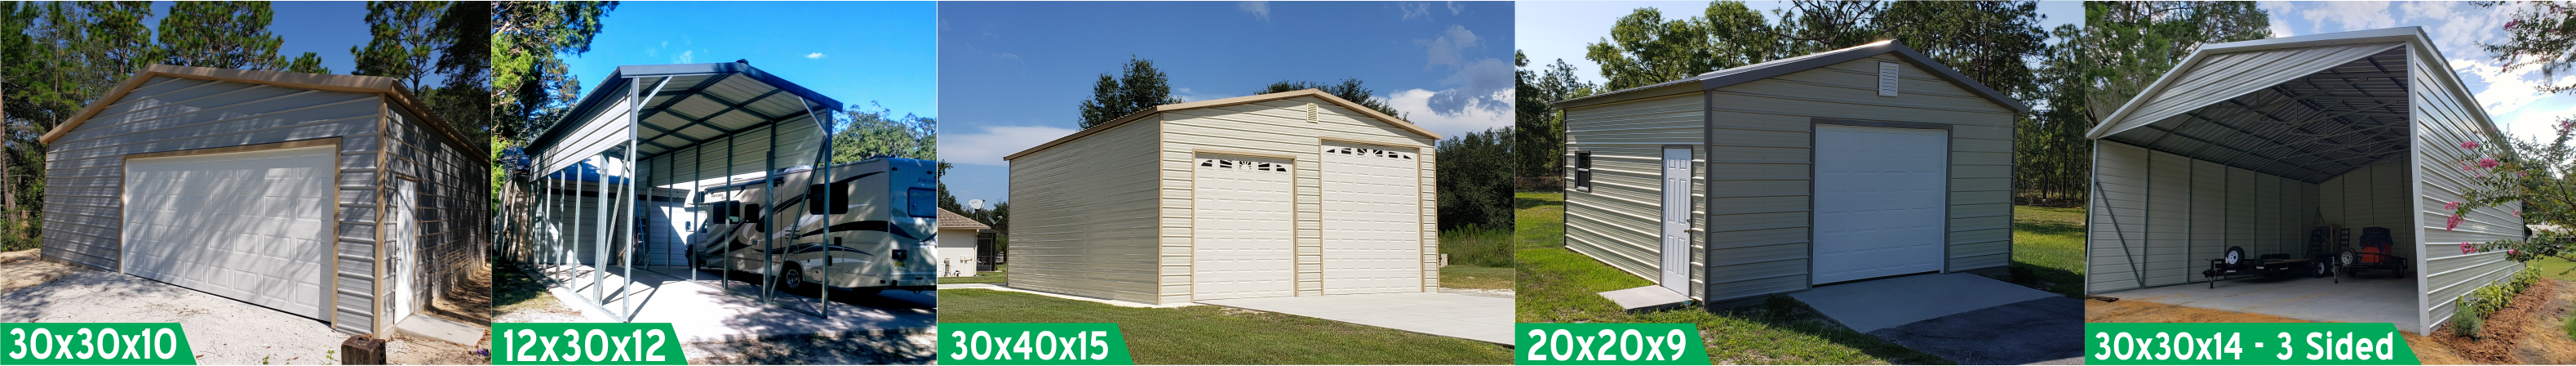 Probuilt Structures Sleel Building Storage Building Sheds She Sheds Man Cave Car port Boat Port RV Port Cover image 2